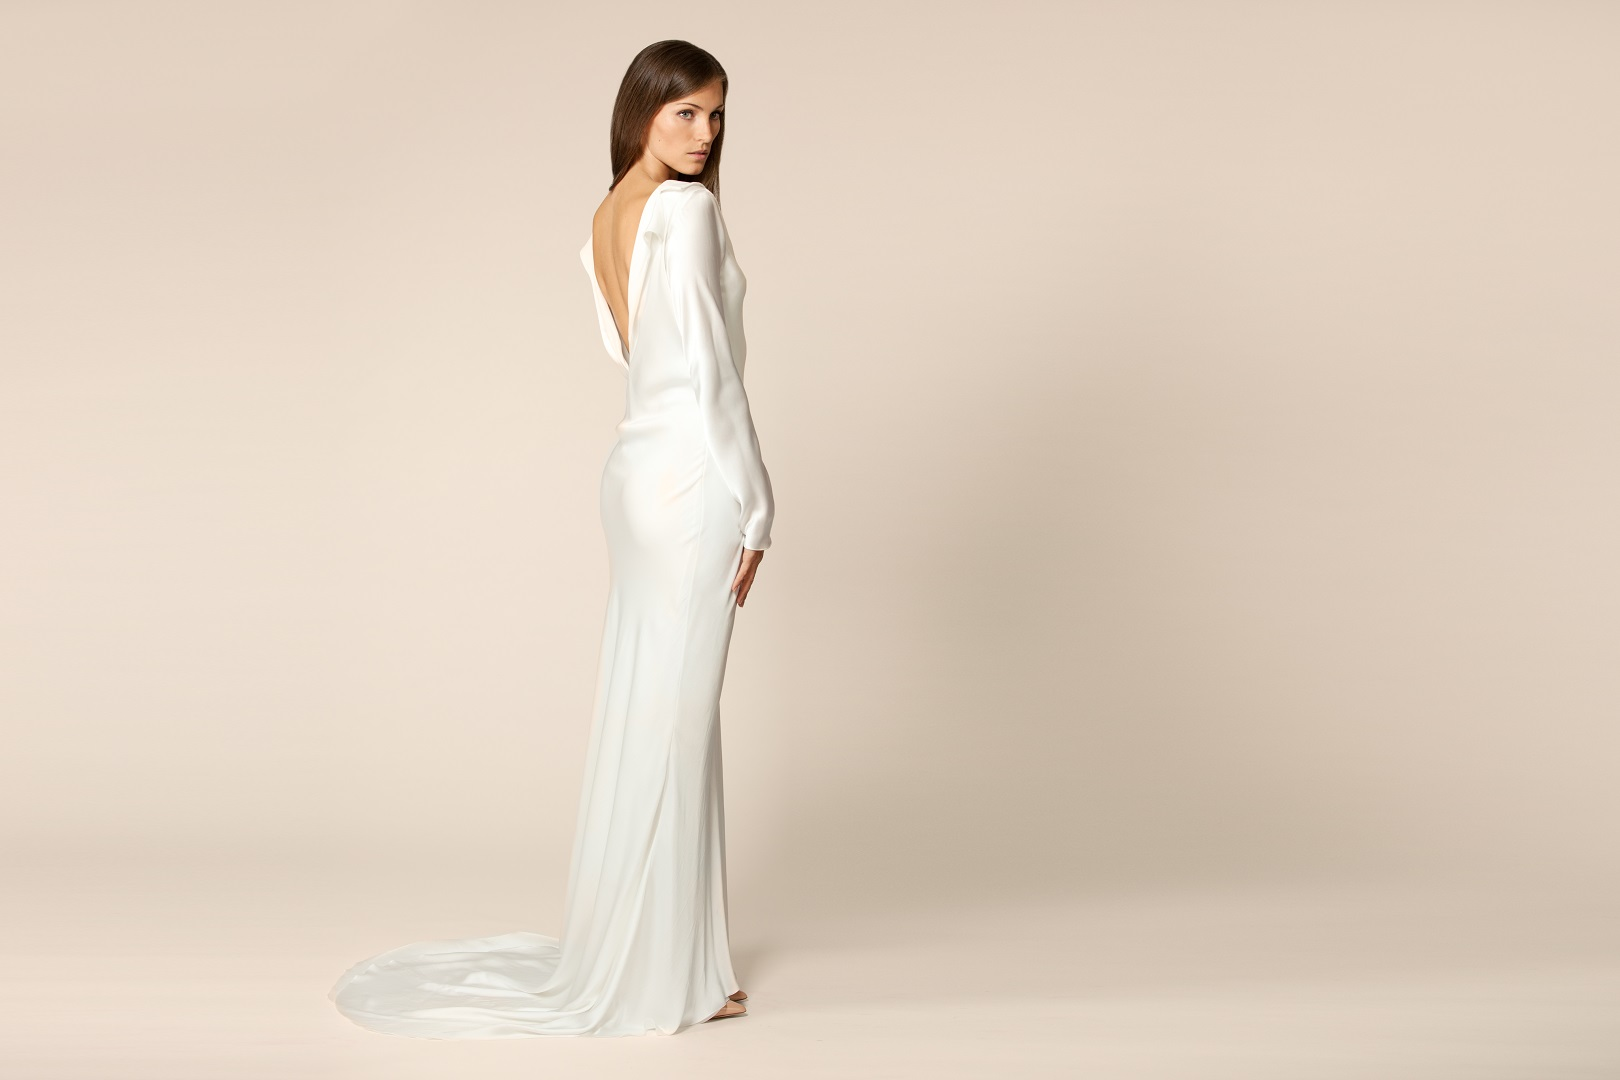 White Silk open back gown Anna2013 (2016_07_02 22_56_22 UTC)